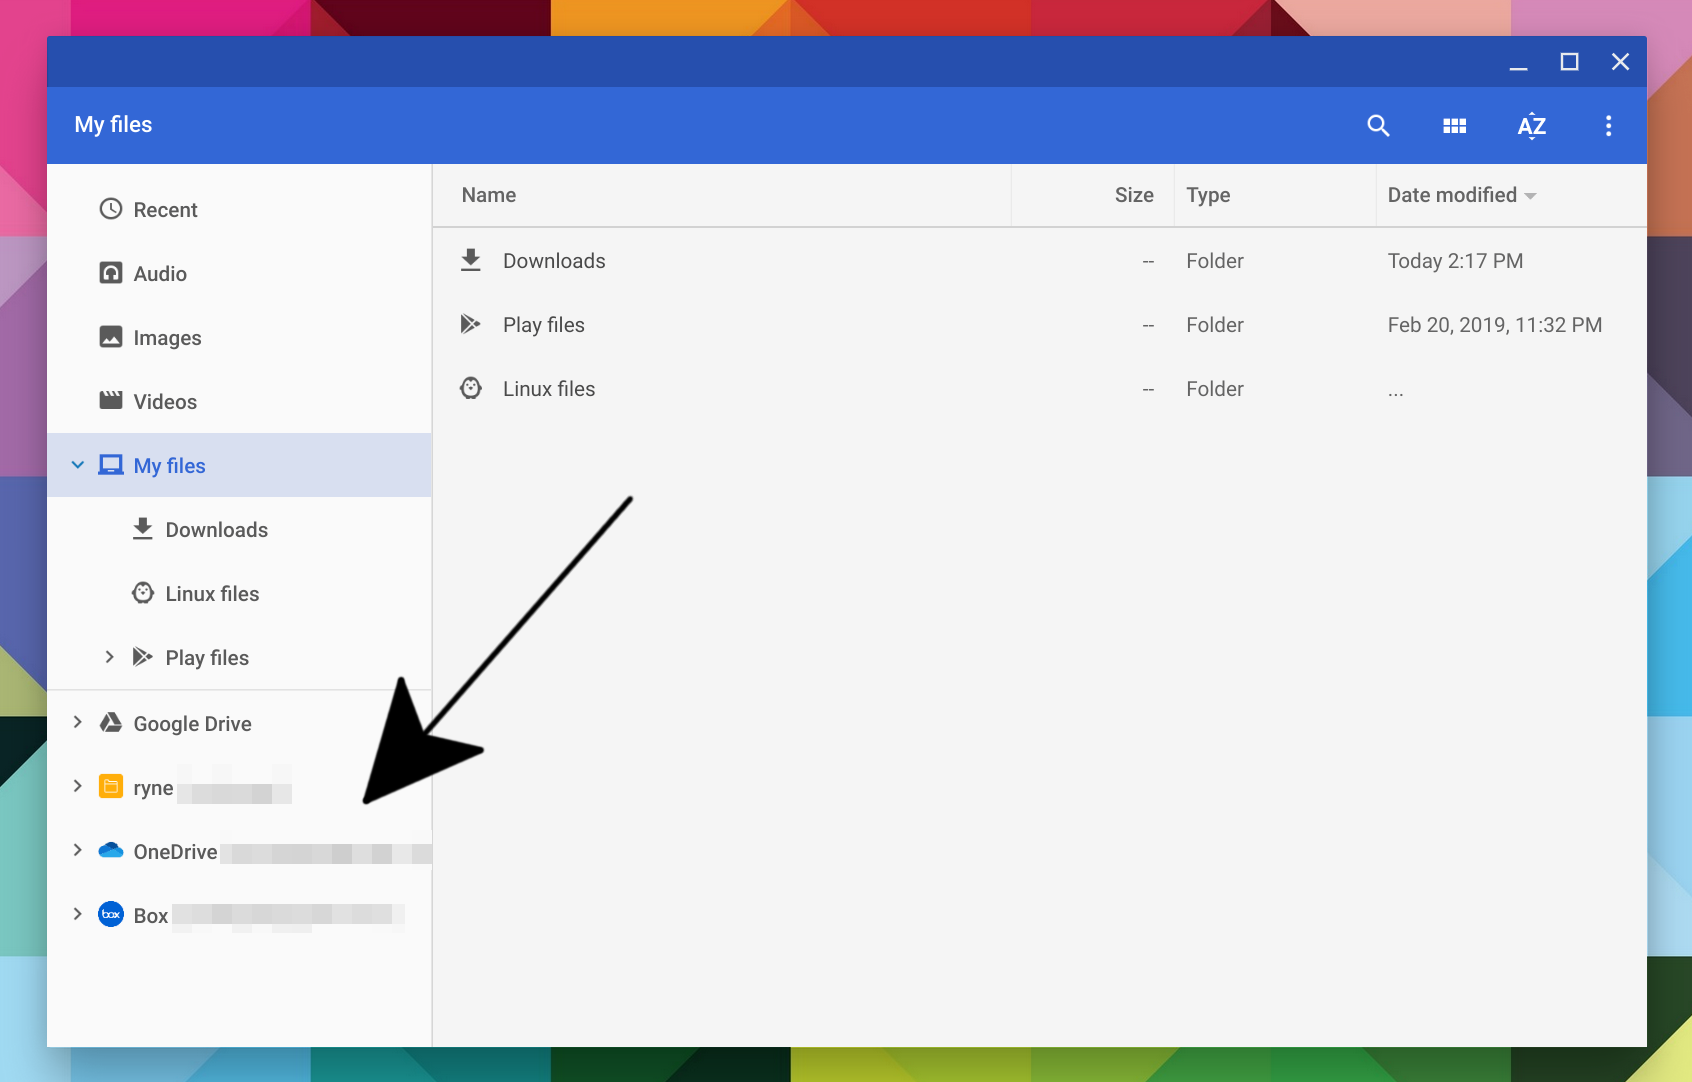 Chrome OS will soon show cloud storage apps natively in Files — but